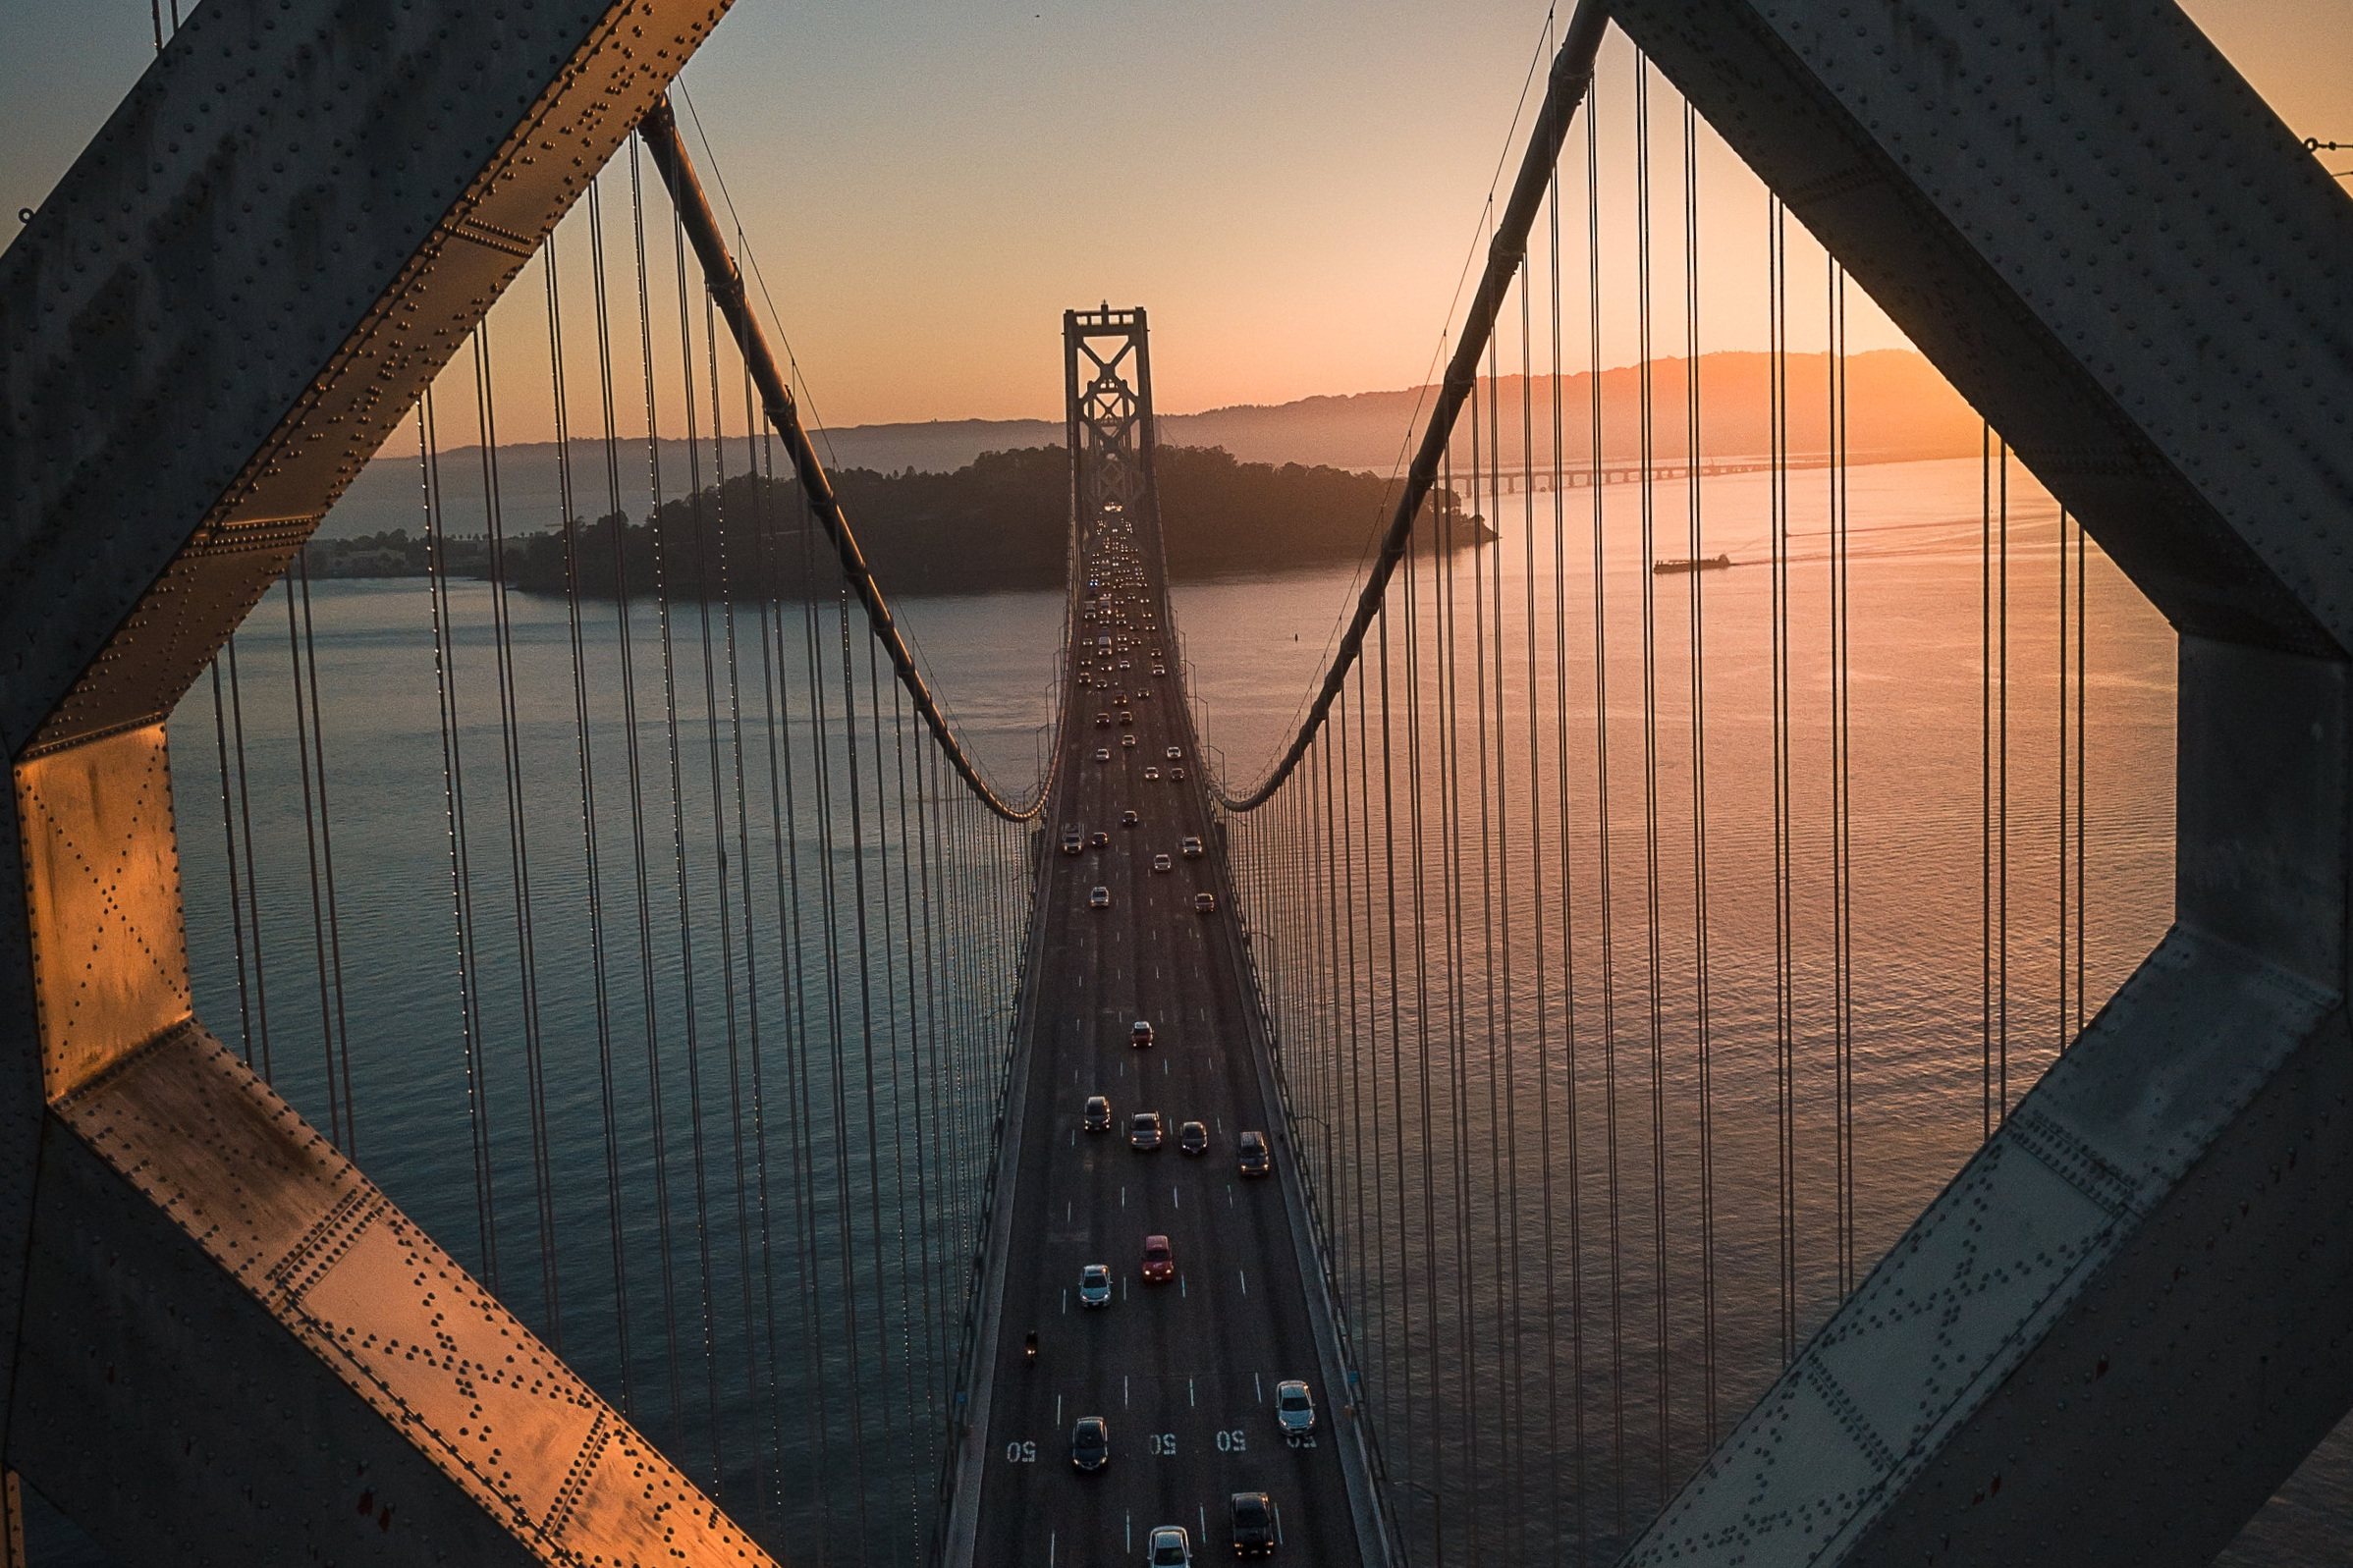 People Analytics & Future of Work 2019 - January 31st & February 1st 2019 San Francisco, CA